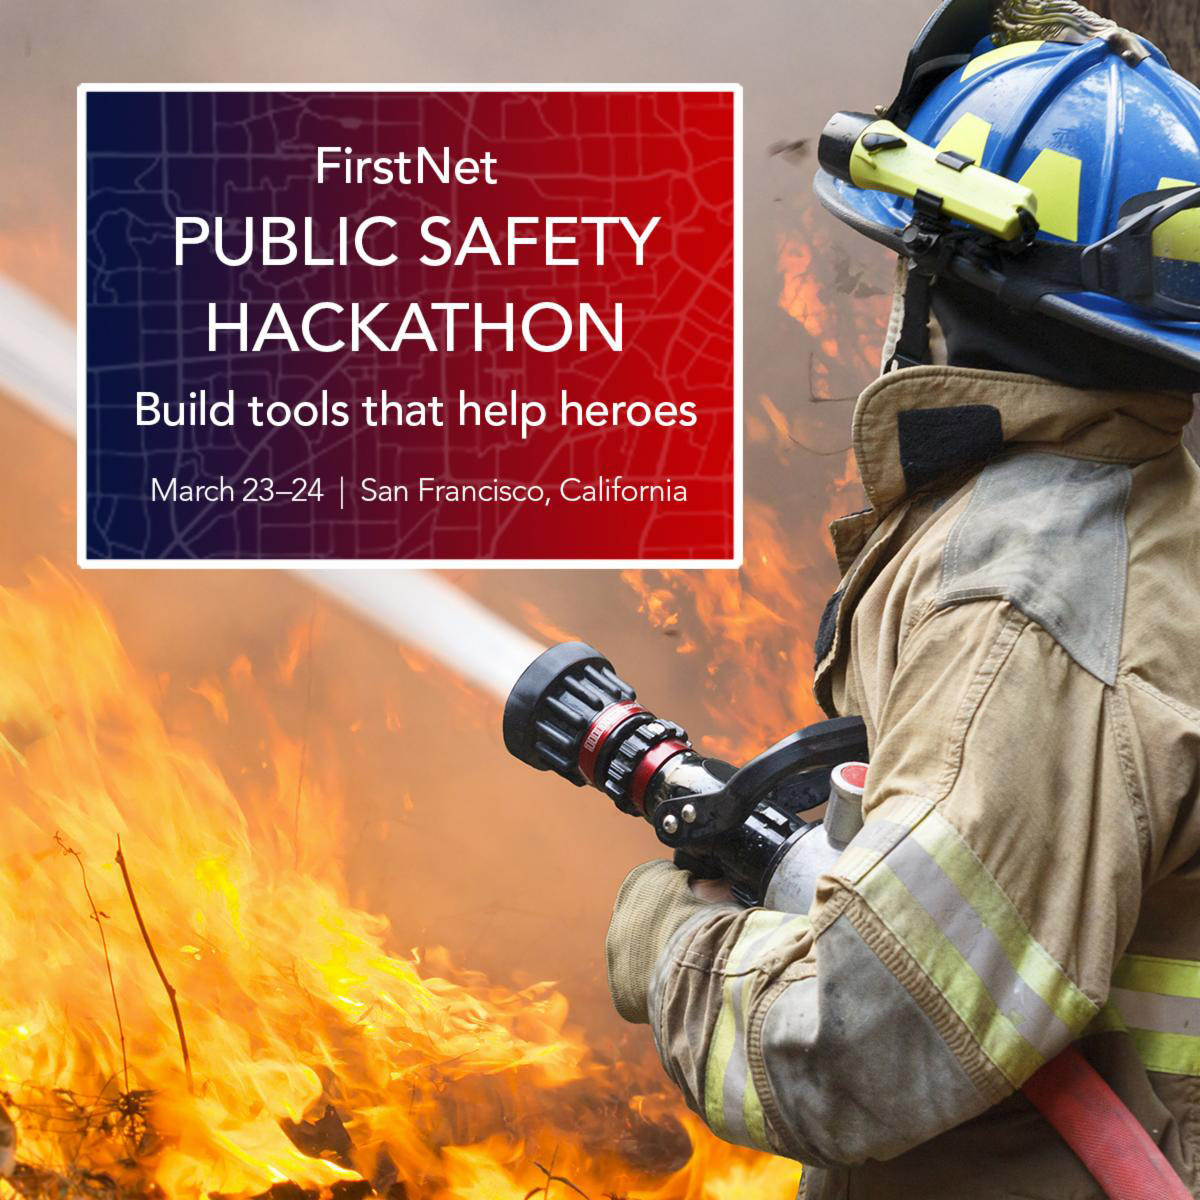 FirstNet Public Safety Hackathon